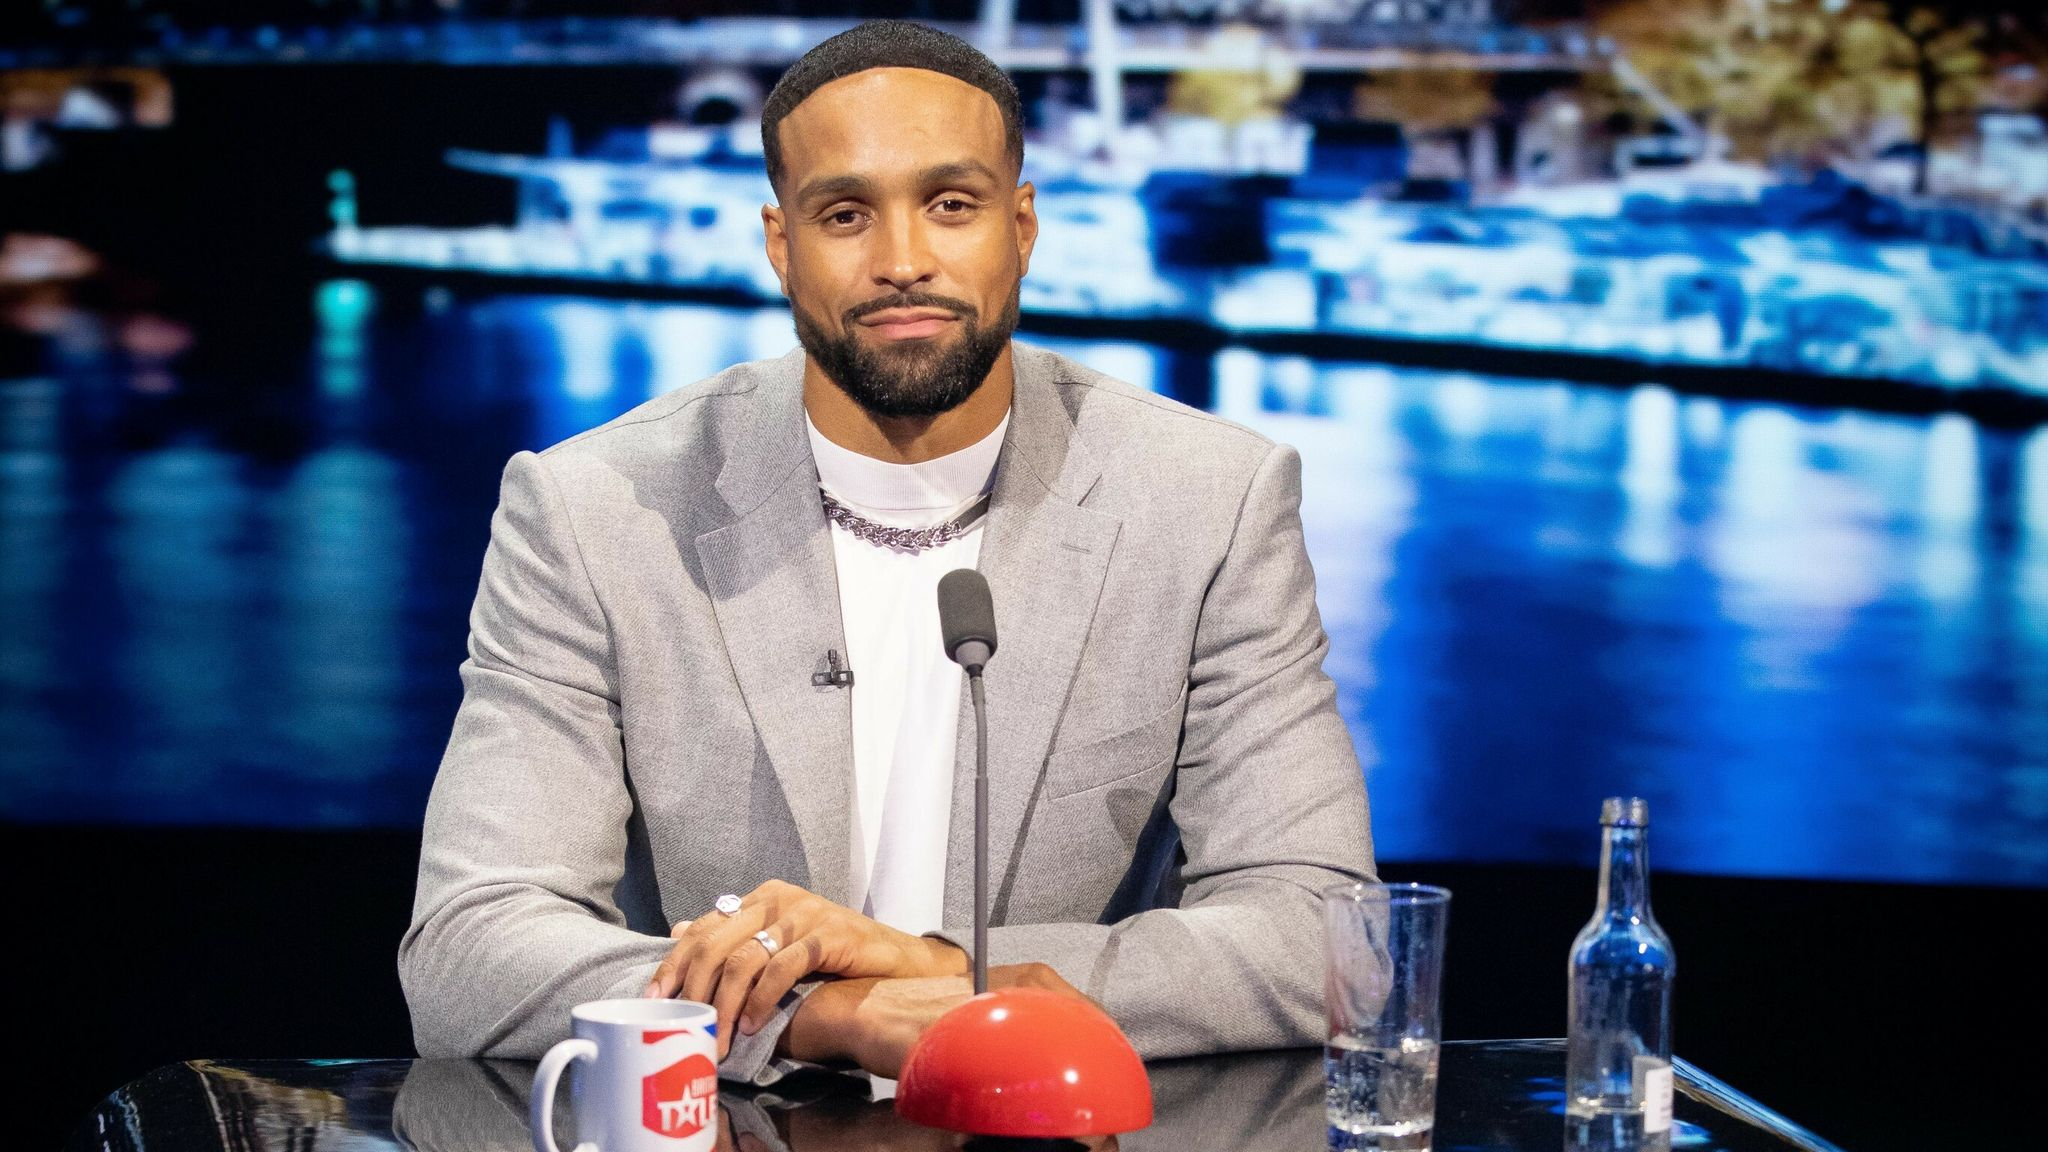 Ashley Banjo of dance troupe Diversity is a temporary judge on this series of Britain's Got Talent. Pic: Syco/ Thames/ ITV